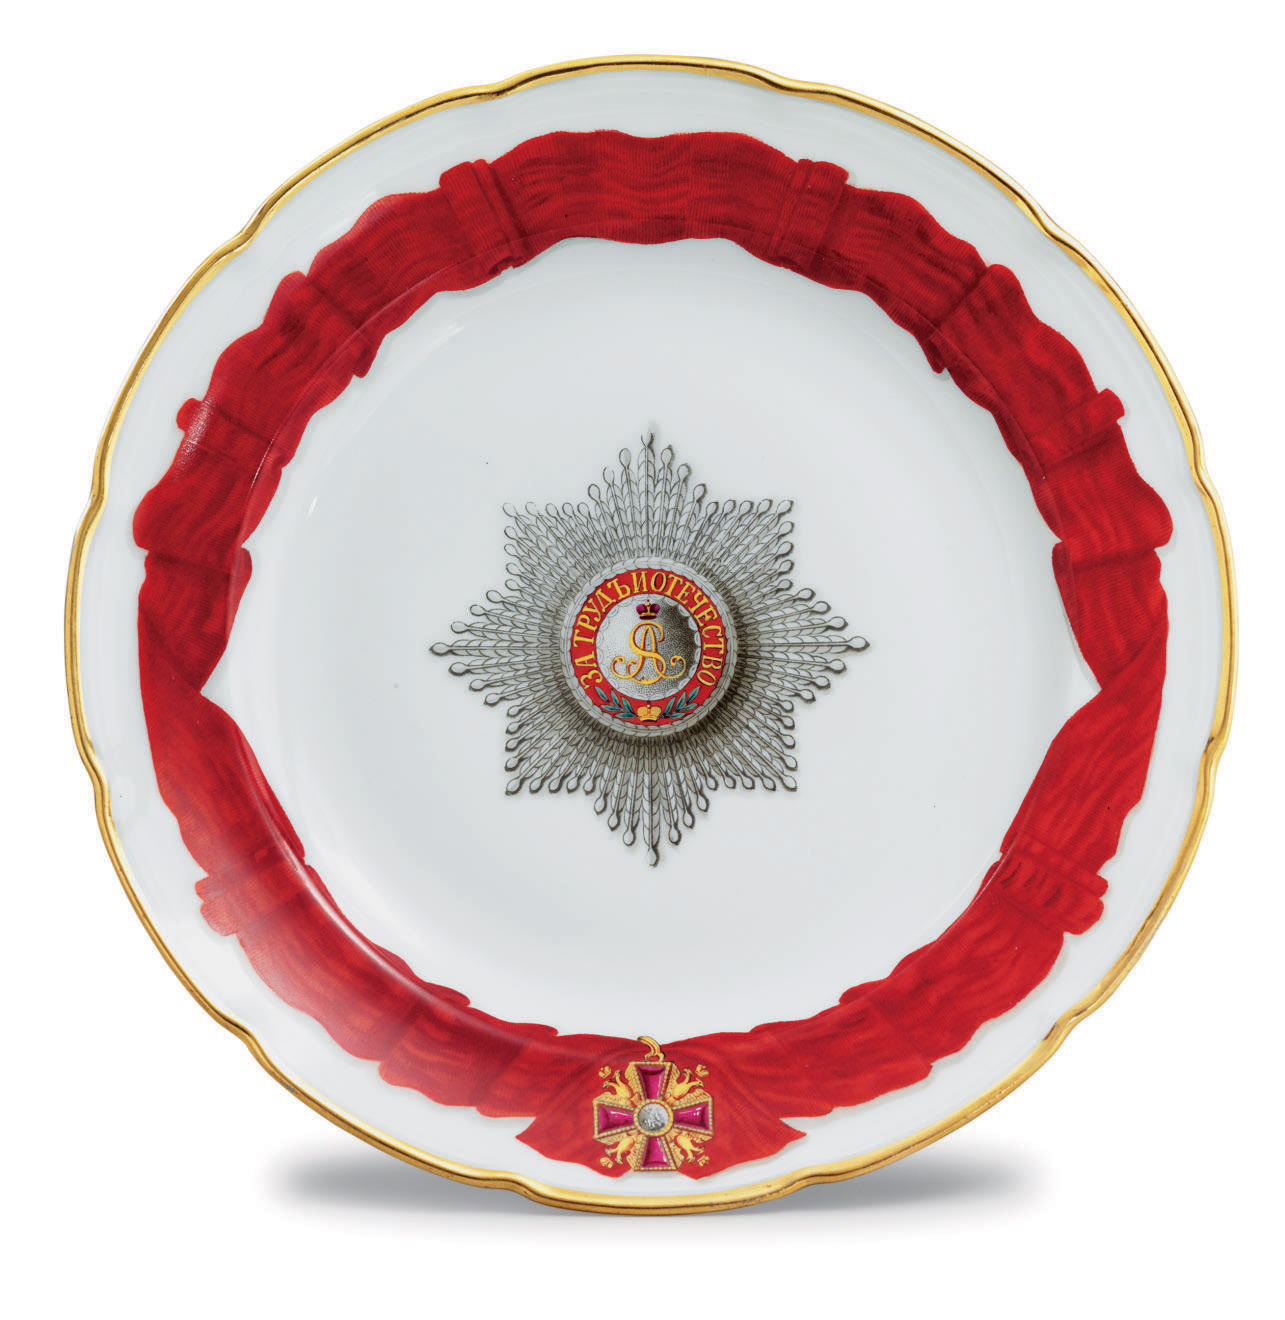 A Porcelain Dinner Plate from